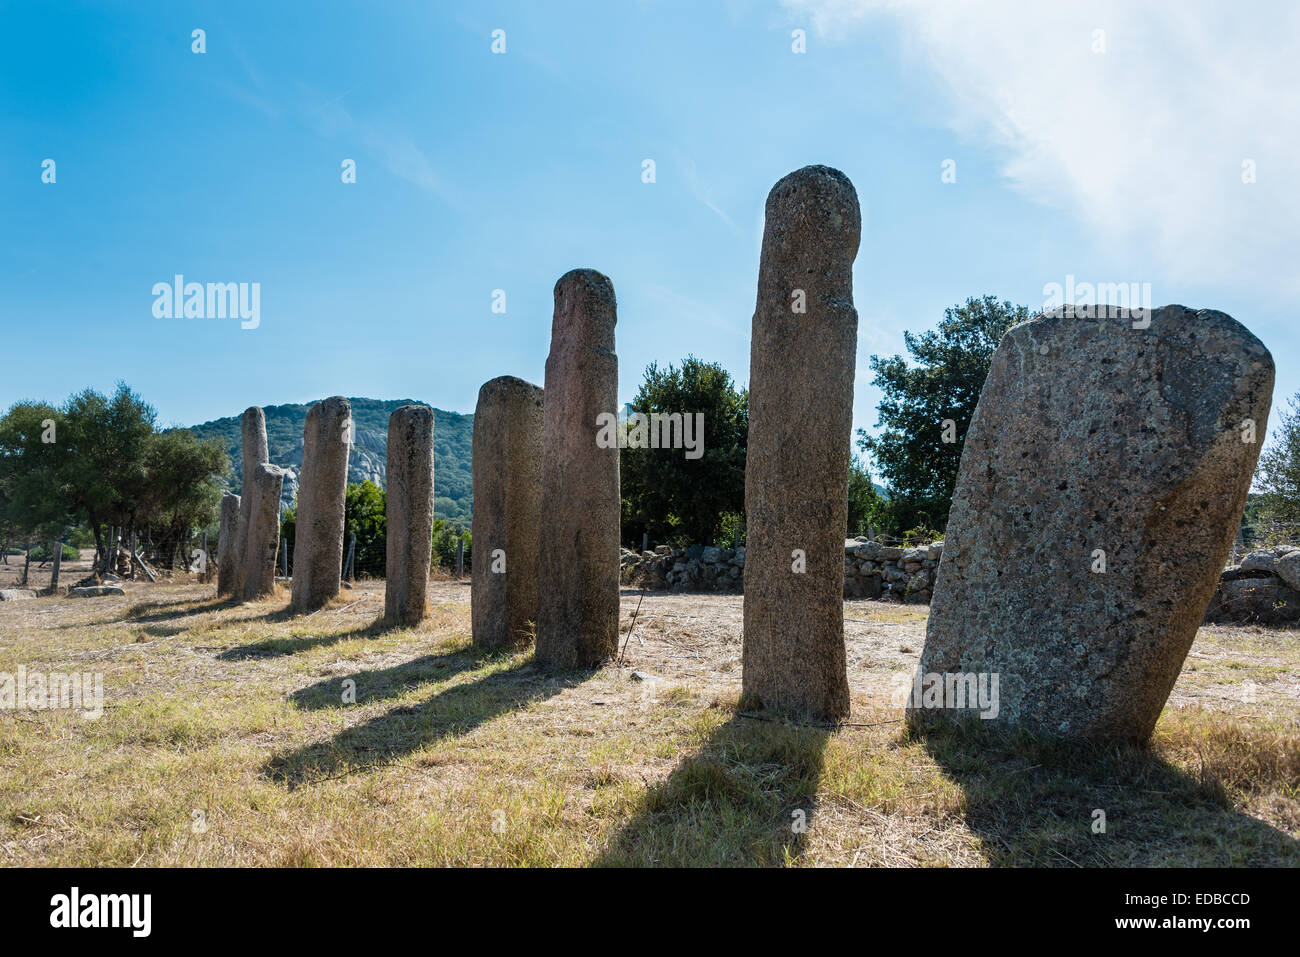 Prehistoric remains of Stantari, menhirs Alignment d 'Stantari, archaeological site of the Neolithic period, - Stock Image